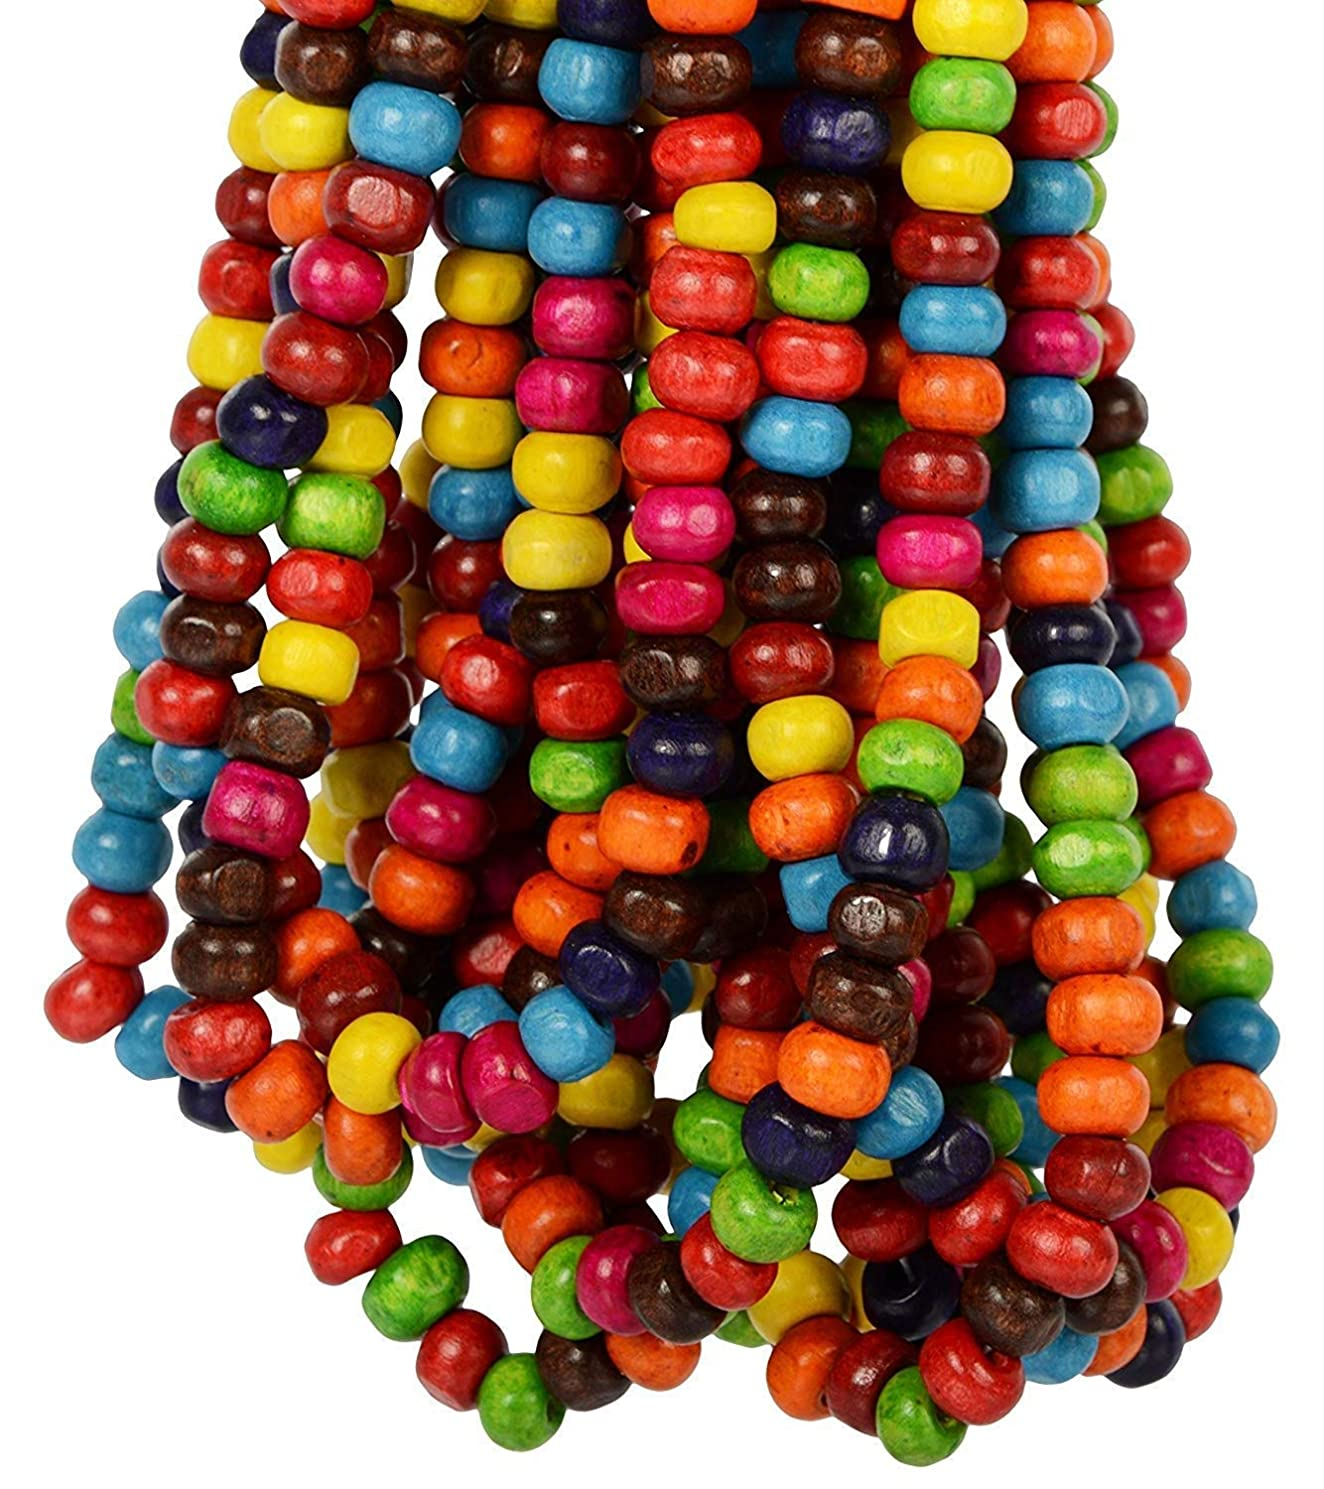 Goelx Round Wooden Beads Bunch(20 Mala) Multi Color 6 mm for Jewellery Making, Beading & Art Craft Work - Approx. 1300 Beads !!